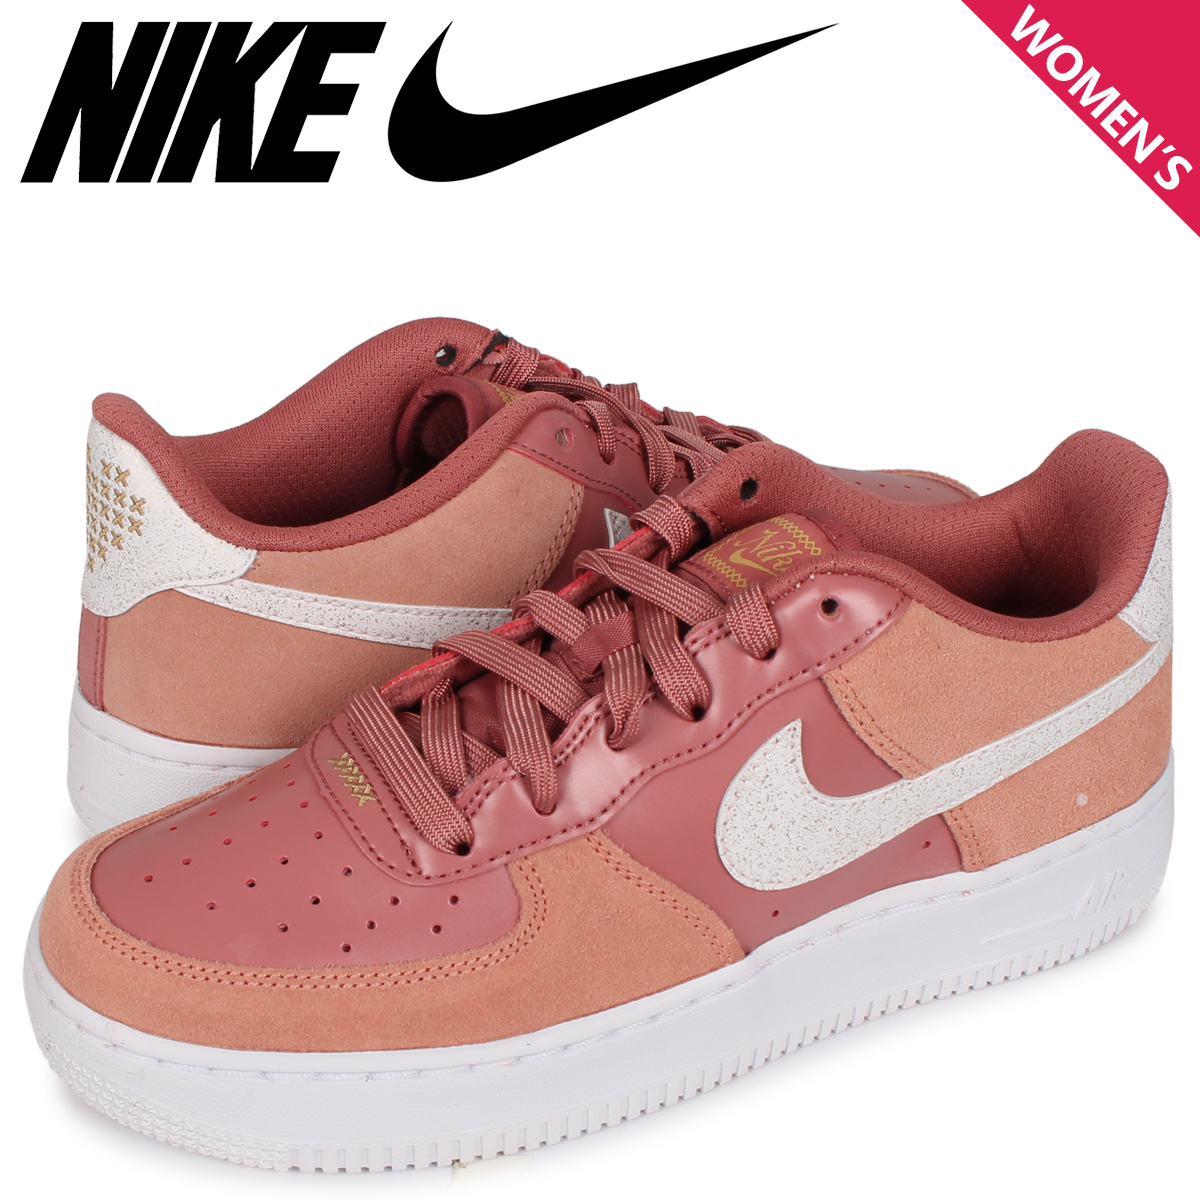 NIKE AIR FORCE 1 LV8 GS VALENTINES DAY ナイキ エアフォース1 スニーカー レディース ピンク CD7407-600 [3/3 新入荷]